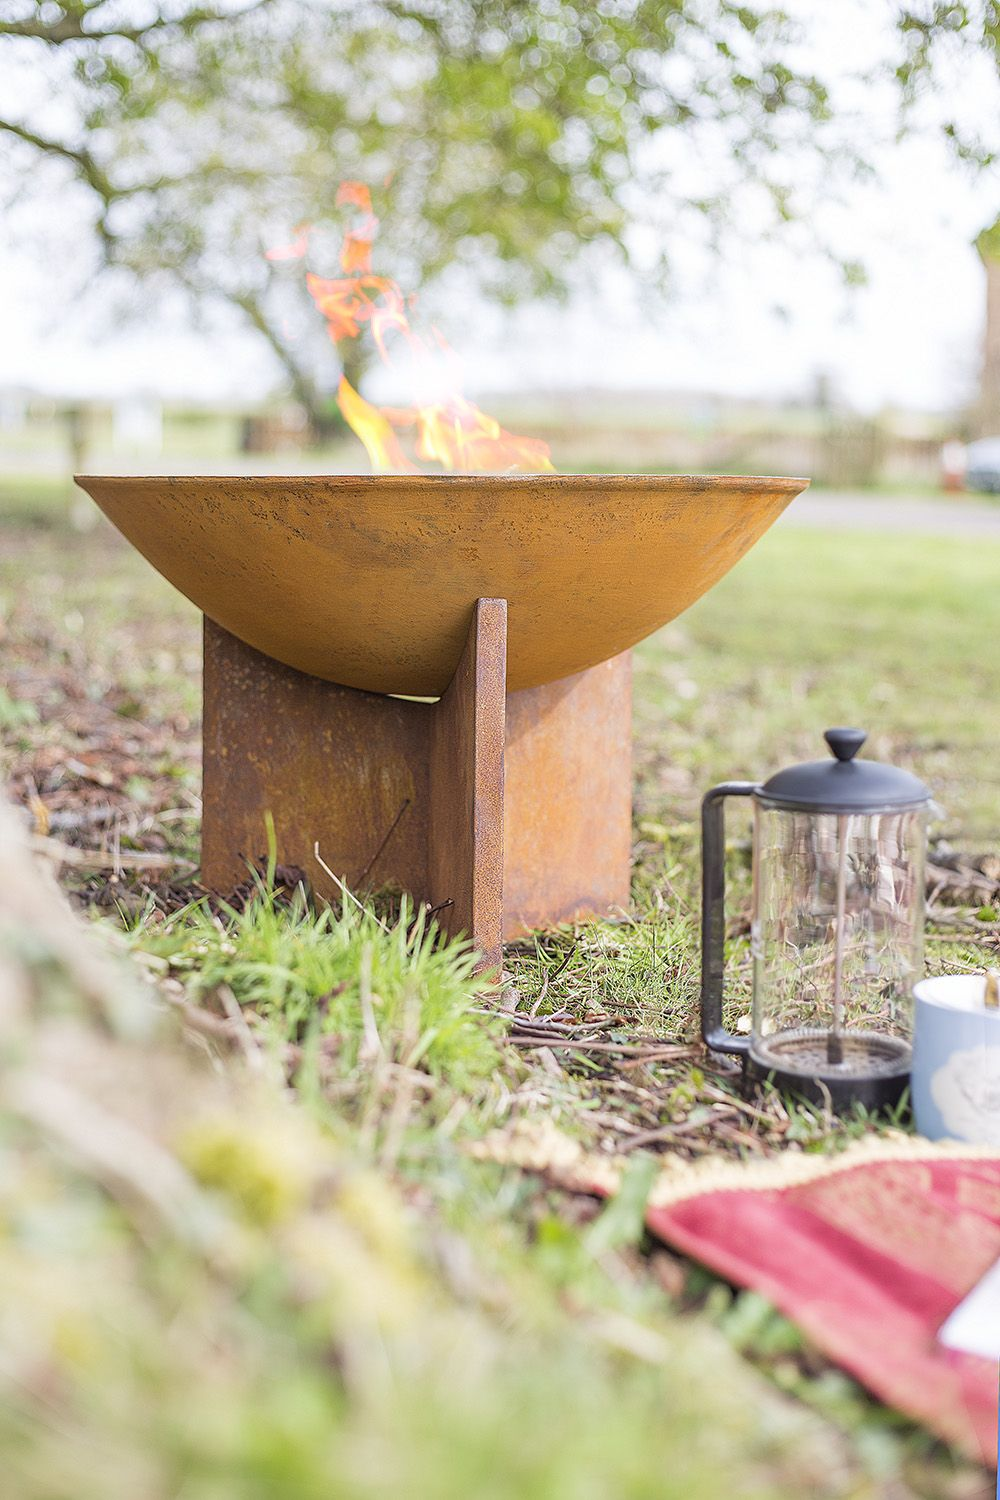 Kala Firepit with Rustic Oxidised Finish 58239 by La Hacienda. Fuss free and low maintenance, the perfect outdoor heater for an organic setting.